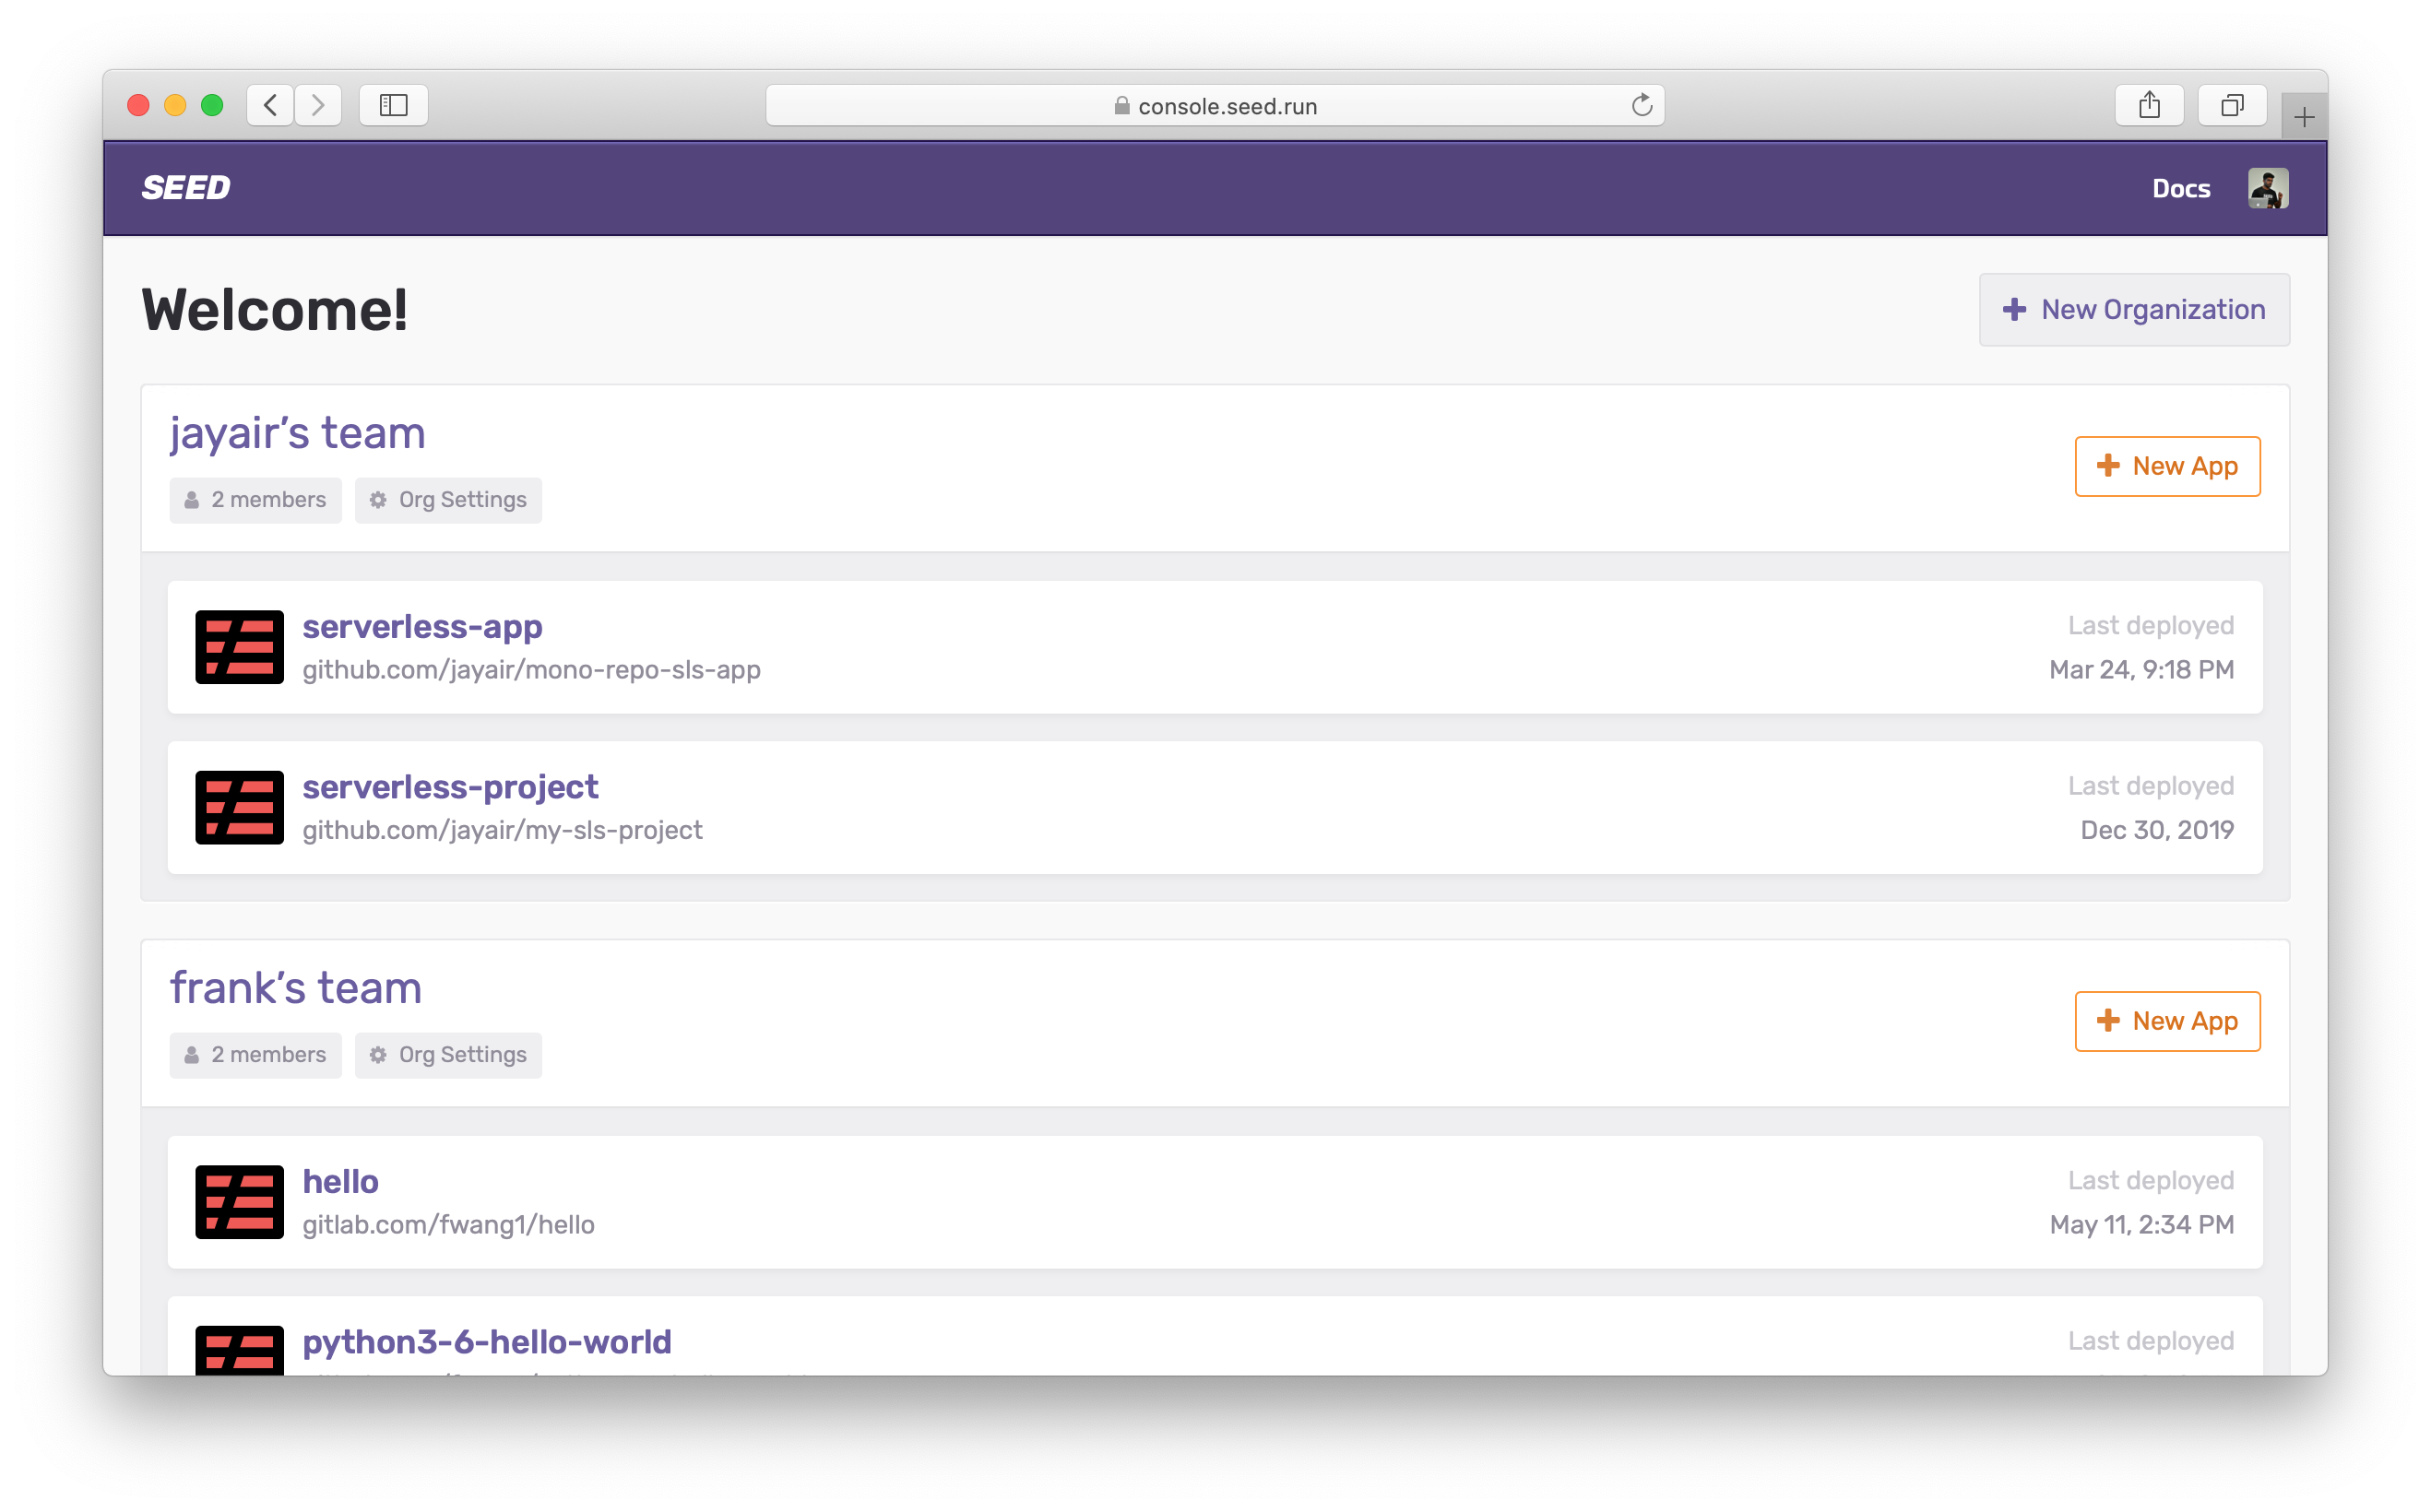 New Seed console homepage